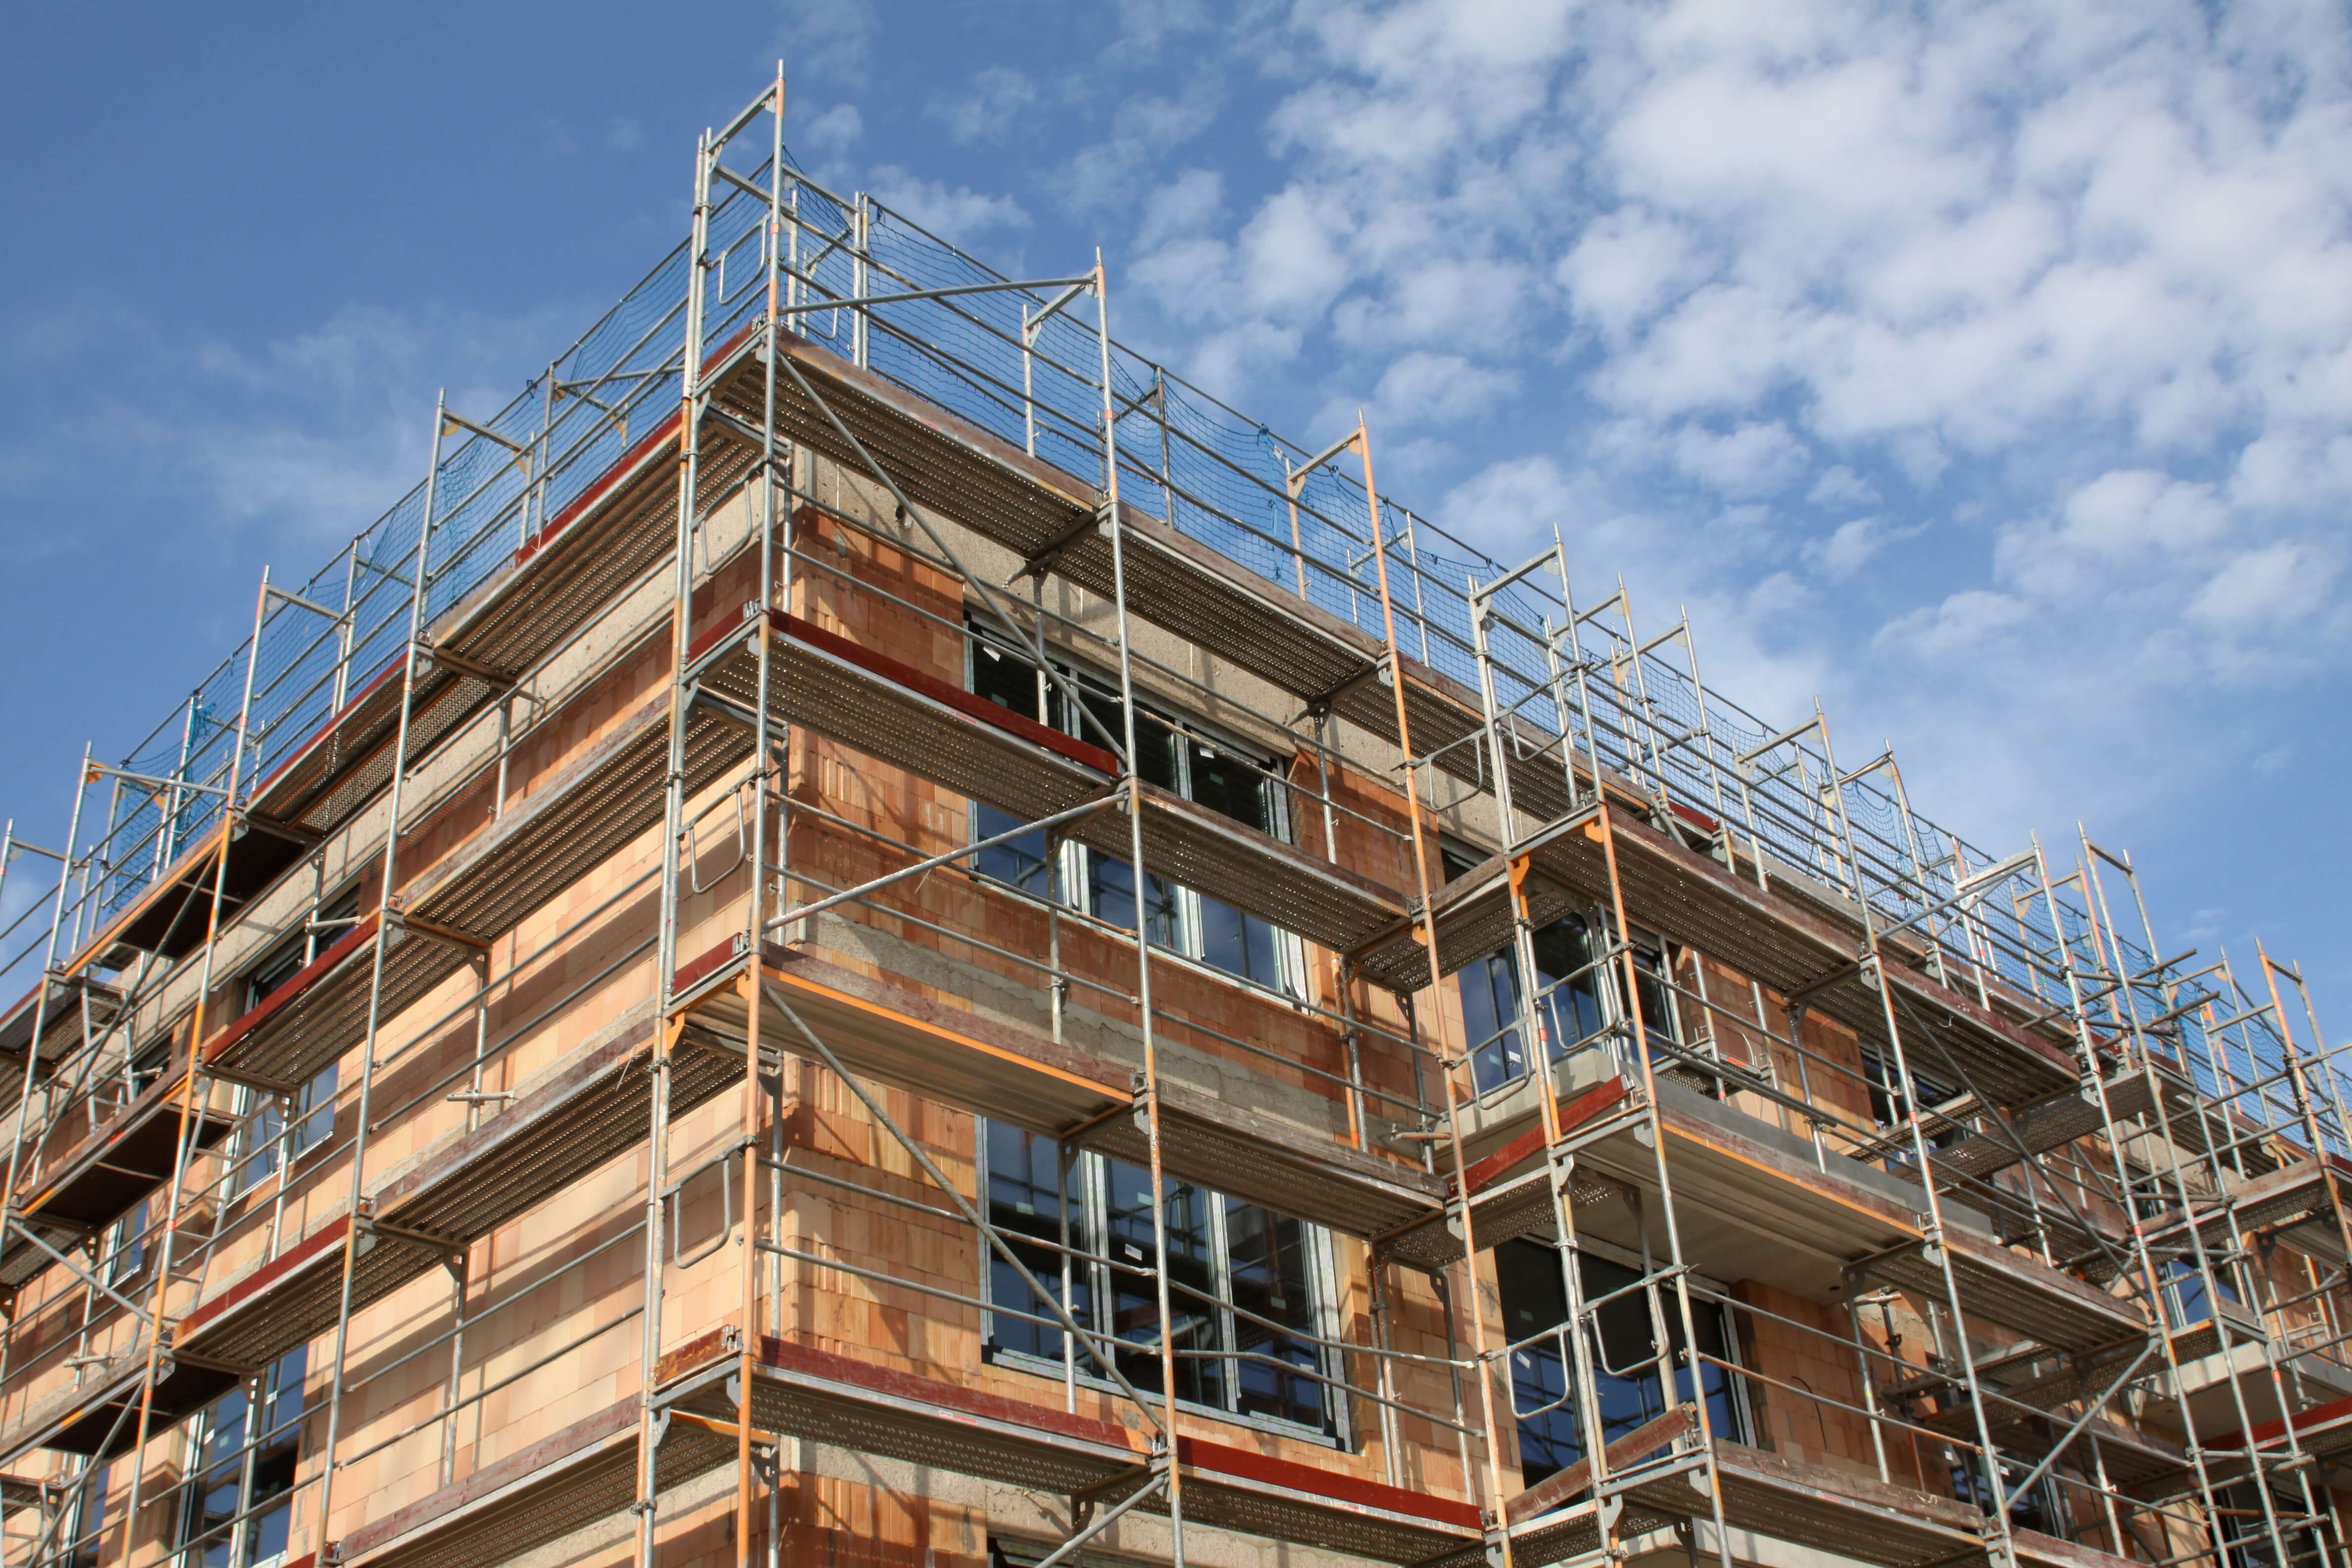 The Dangers Of Scaffolding L Scaffolding Accidents